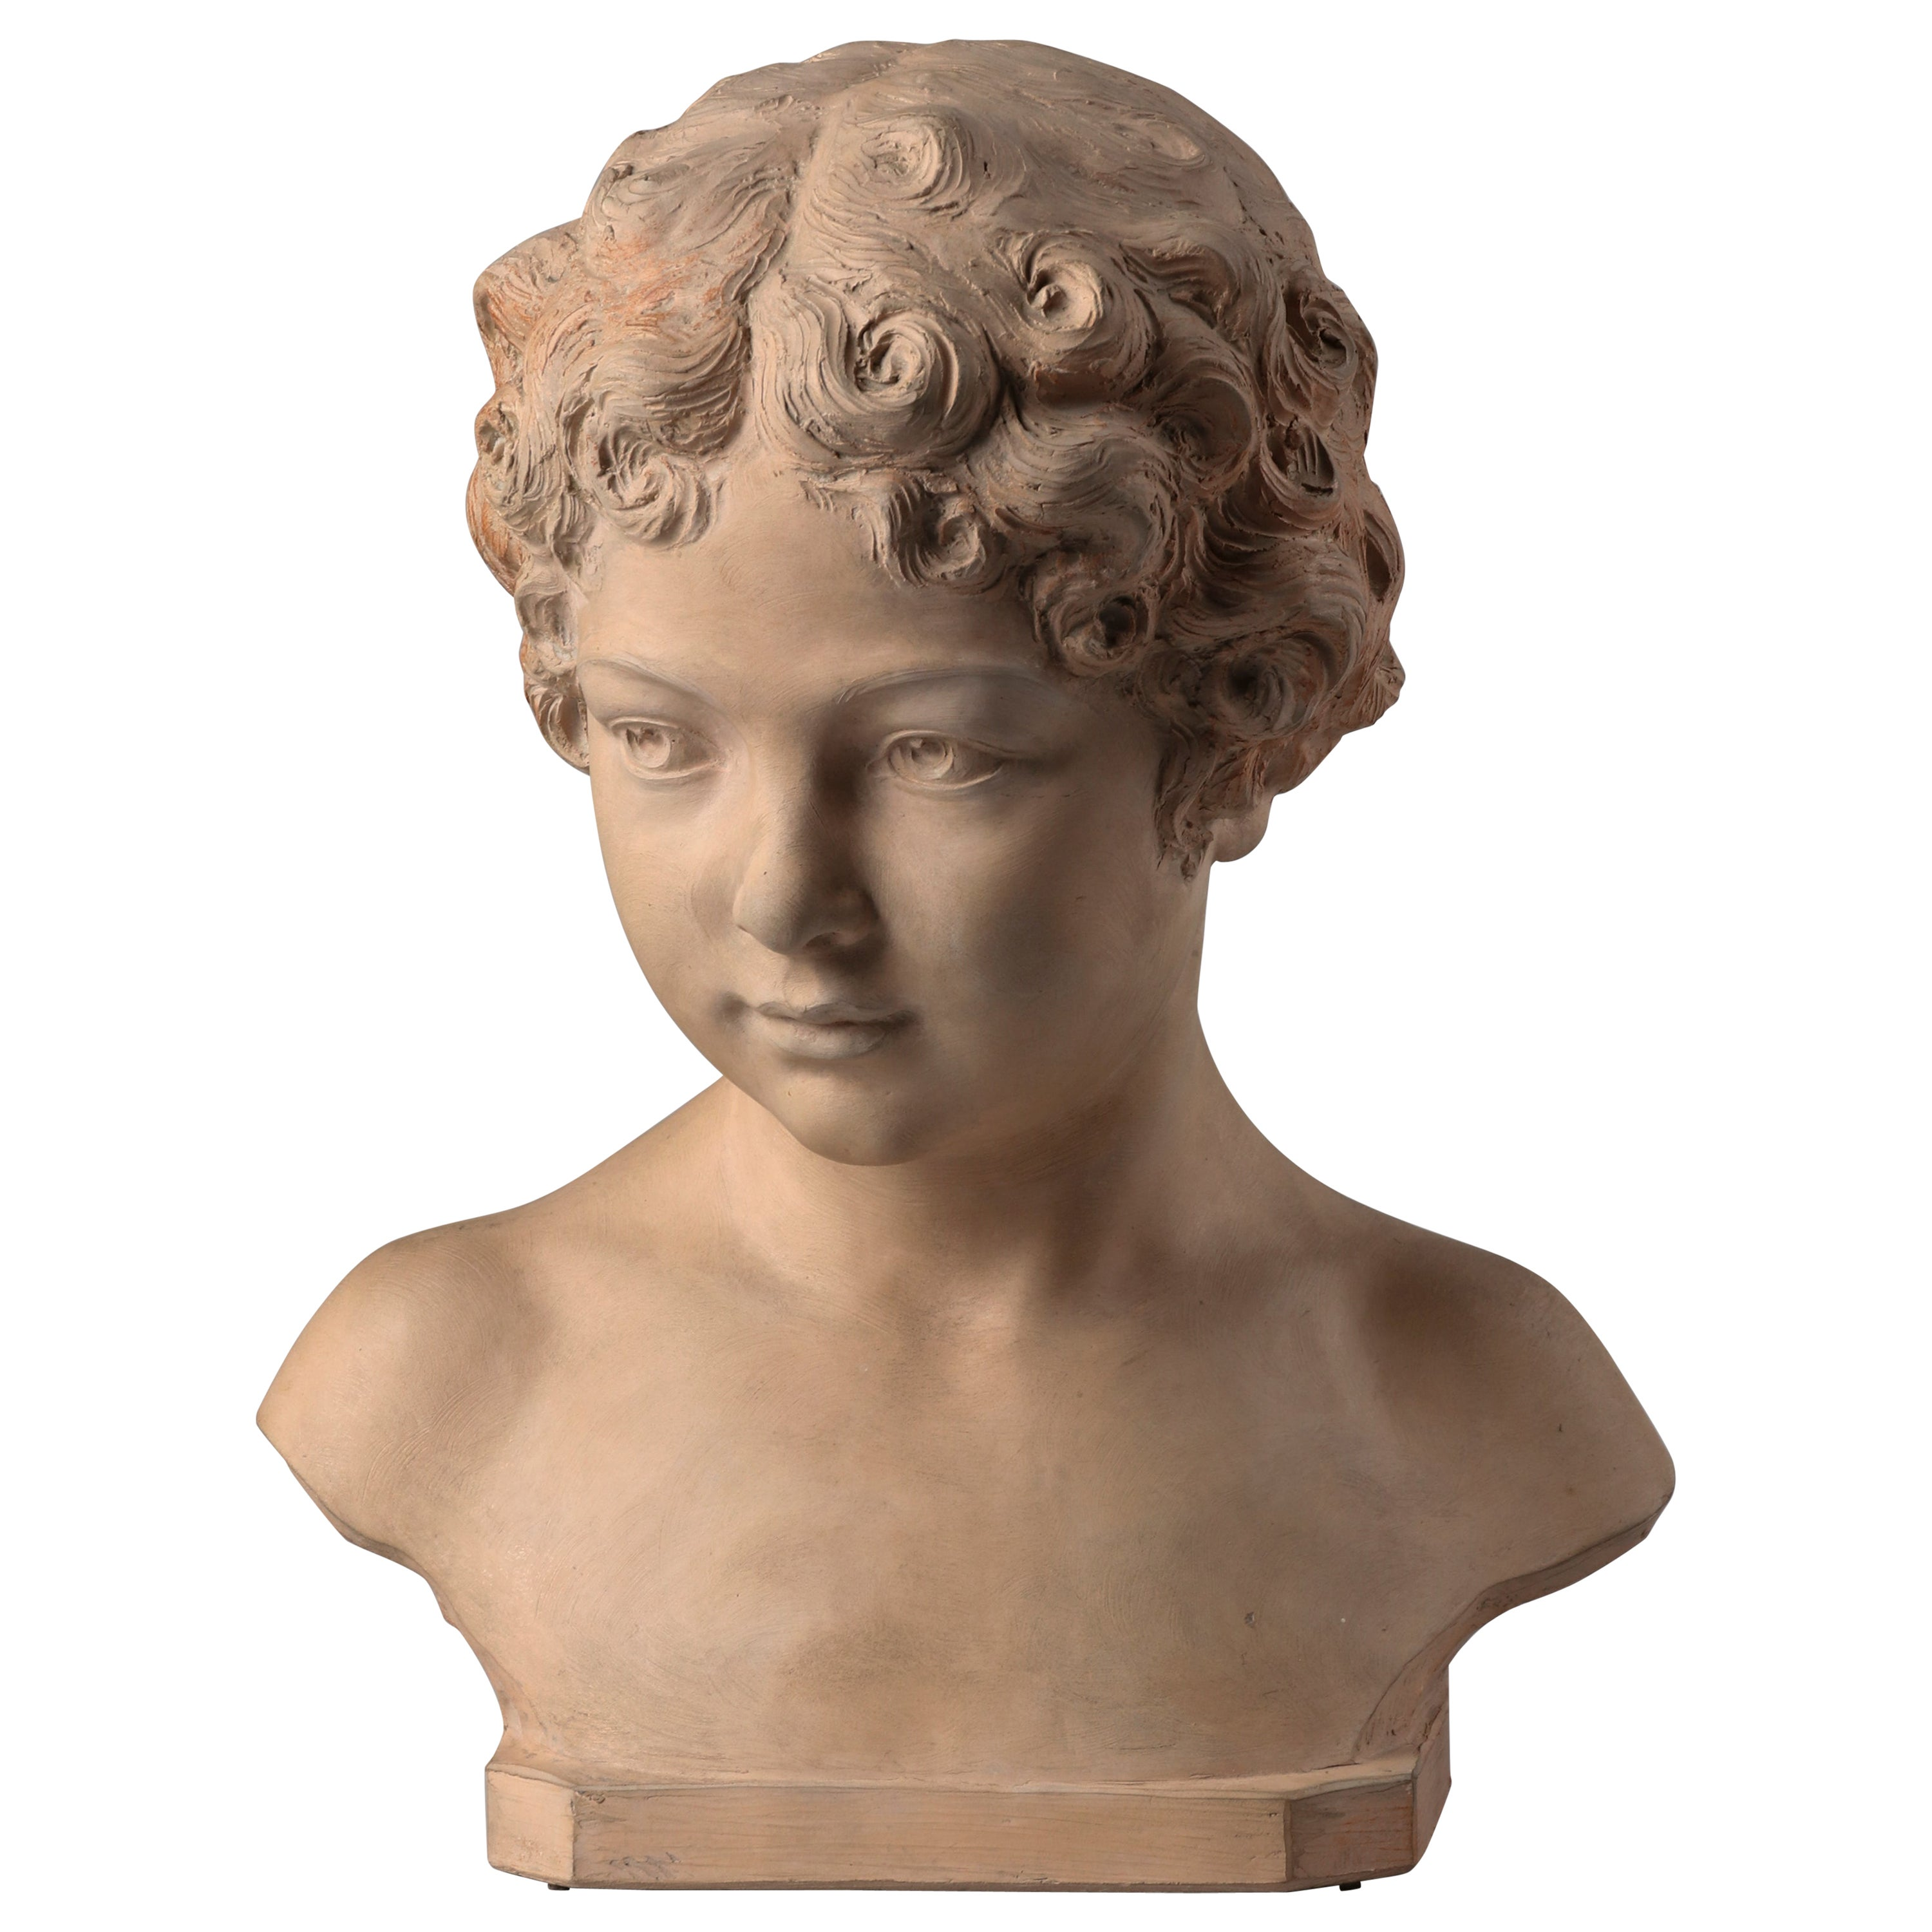 Early 19th Century French Terracotta Statue of a Young Boy Signed Henri Bargas